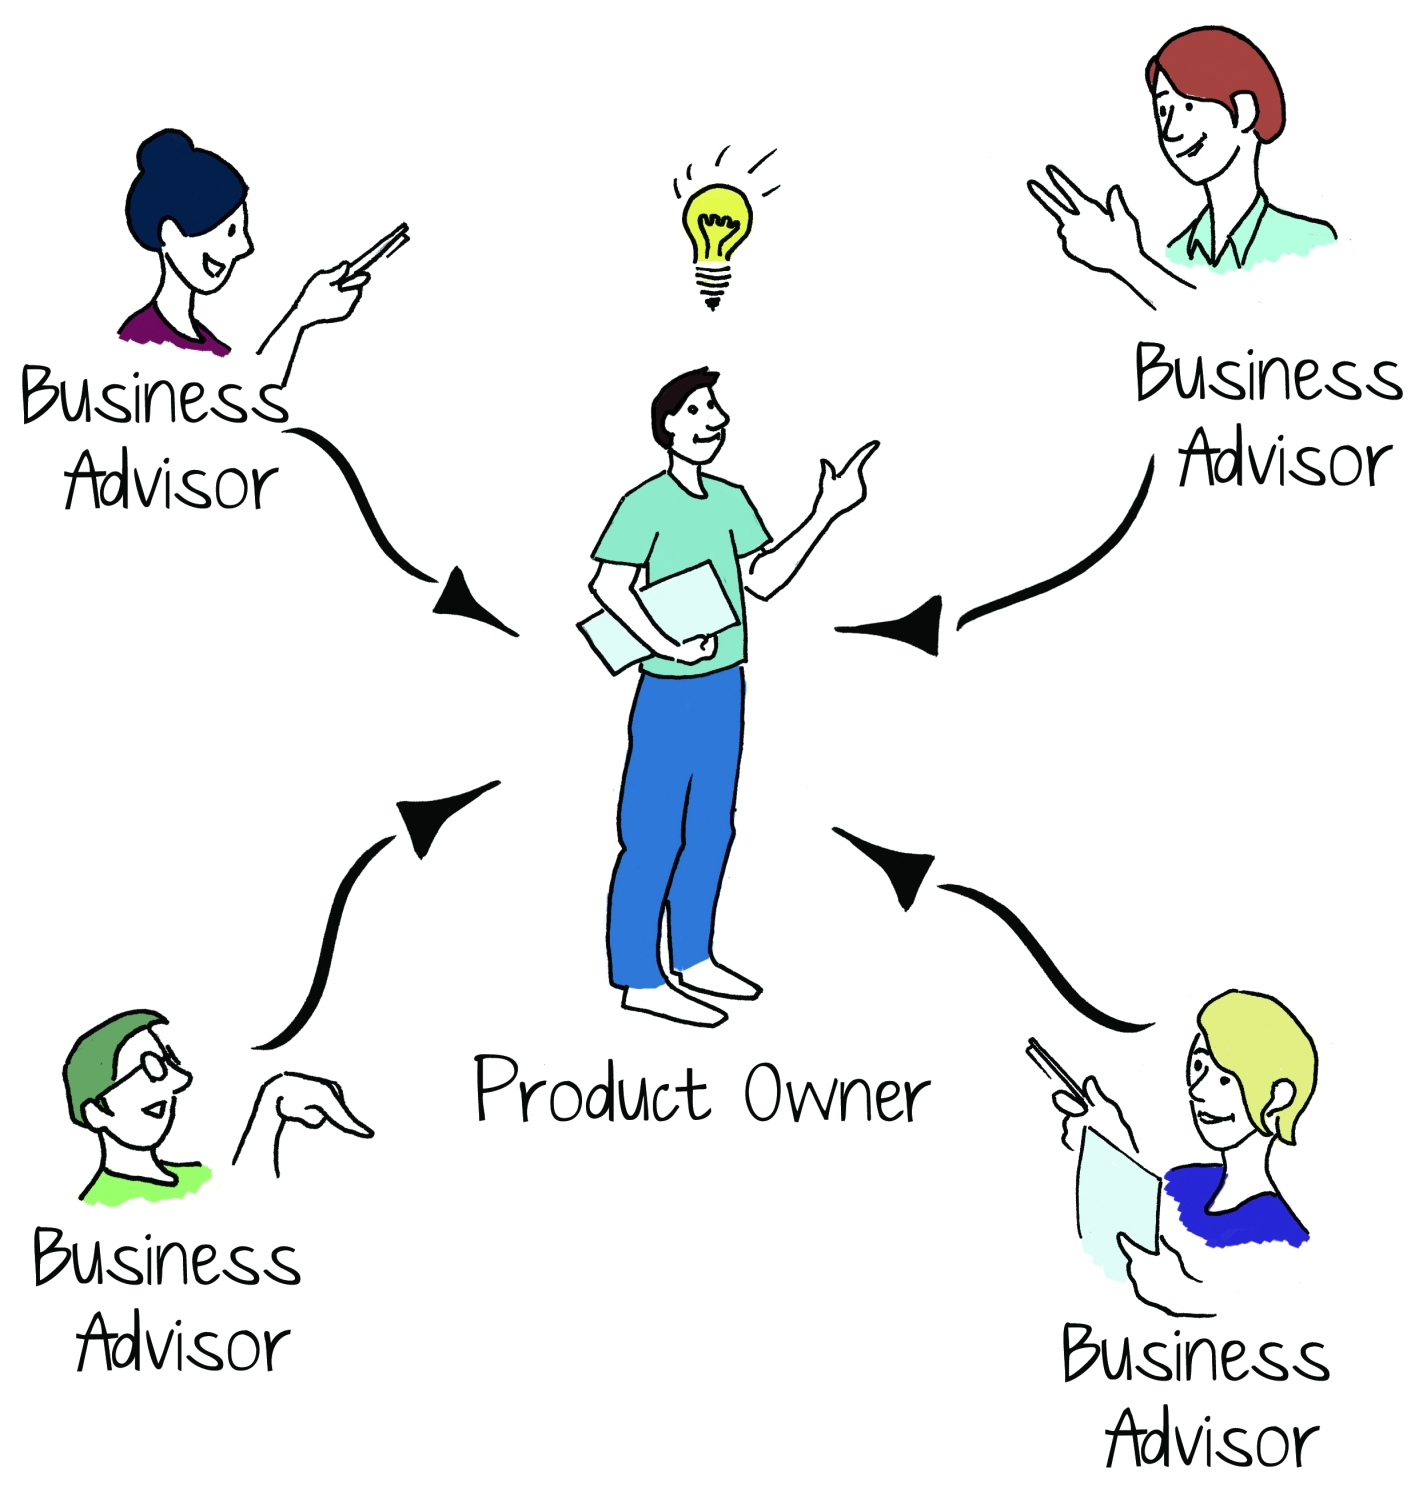 A good product owner has a large business network.